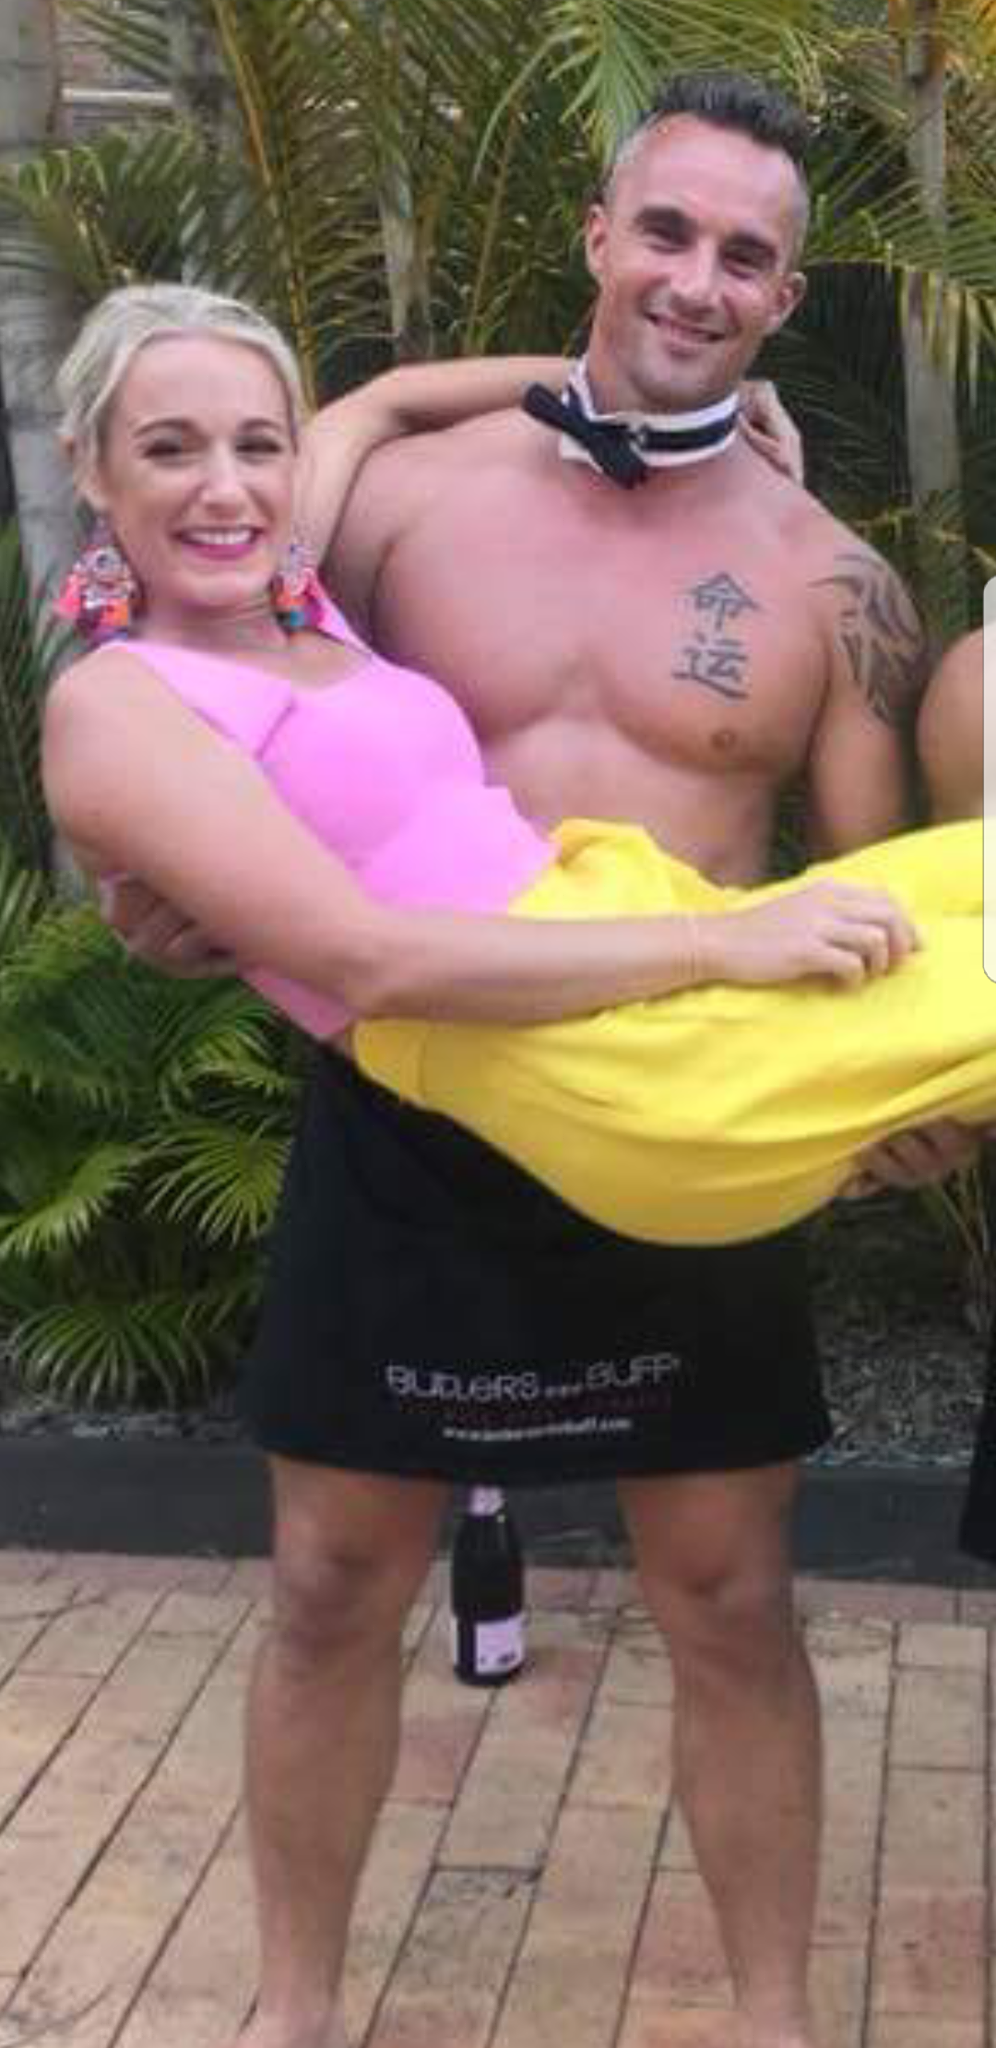 topless male waiters for hire - Brisbane CBD